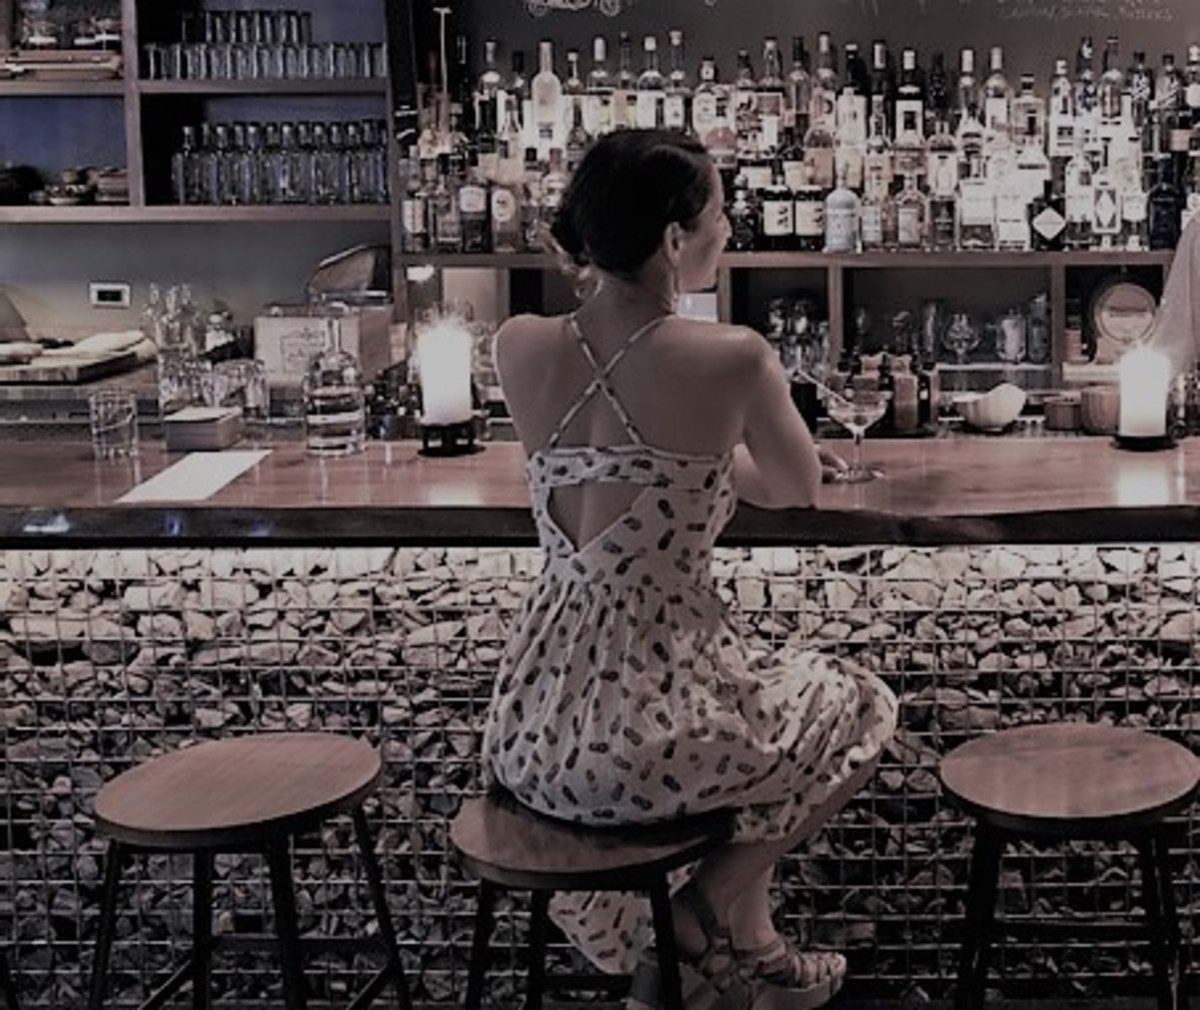 She stayed a while longer to finish her drink. Then, she paid her tab and left the scene, feeling emptier than when she had entered.